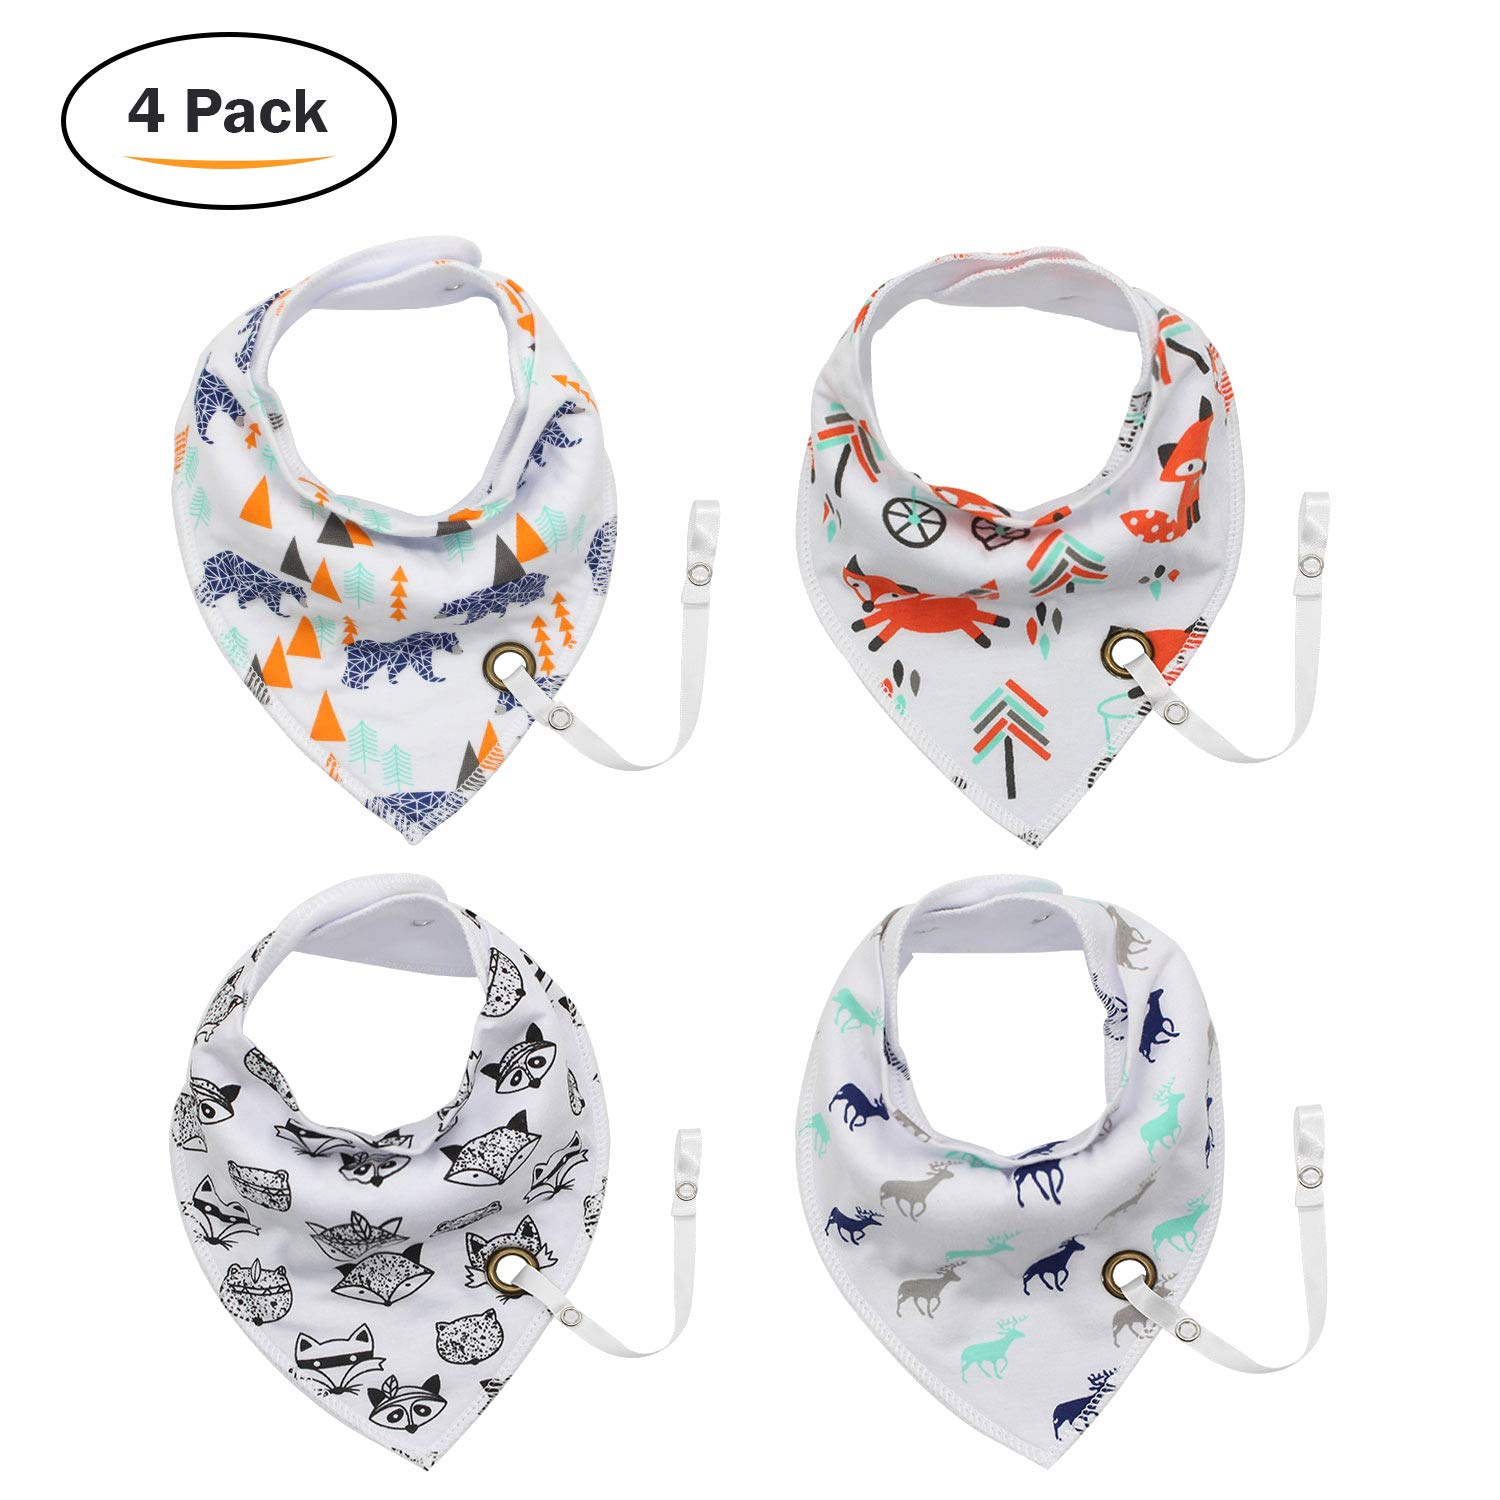 Baby Dribble Bib - Bandana Dribble Bibs Boys, Bandana Drool Bibs For Toddlers, Super Absorbent Soft Cute Bibs Girls, Ideal New Baby Gift With 2 Adjustable Snaps - 8PCS Kordear